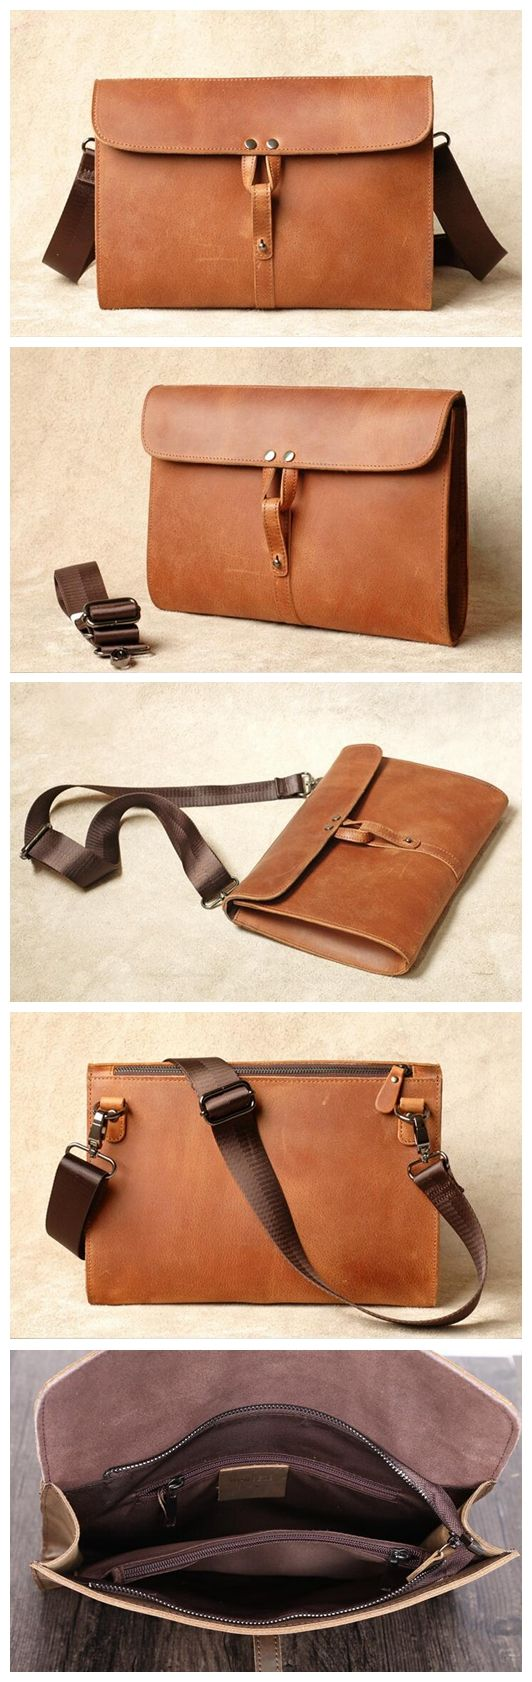 LEATHER GOODS FOR IPAD, LEATHER IPAD BAG, LEATHER IPAD SLEEVE, LEATHER DESIGN, LEATHER CASE, LEATHER ART, HANDMADE BAG, MEN FASHION, MEN GIFTS